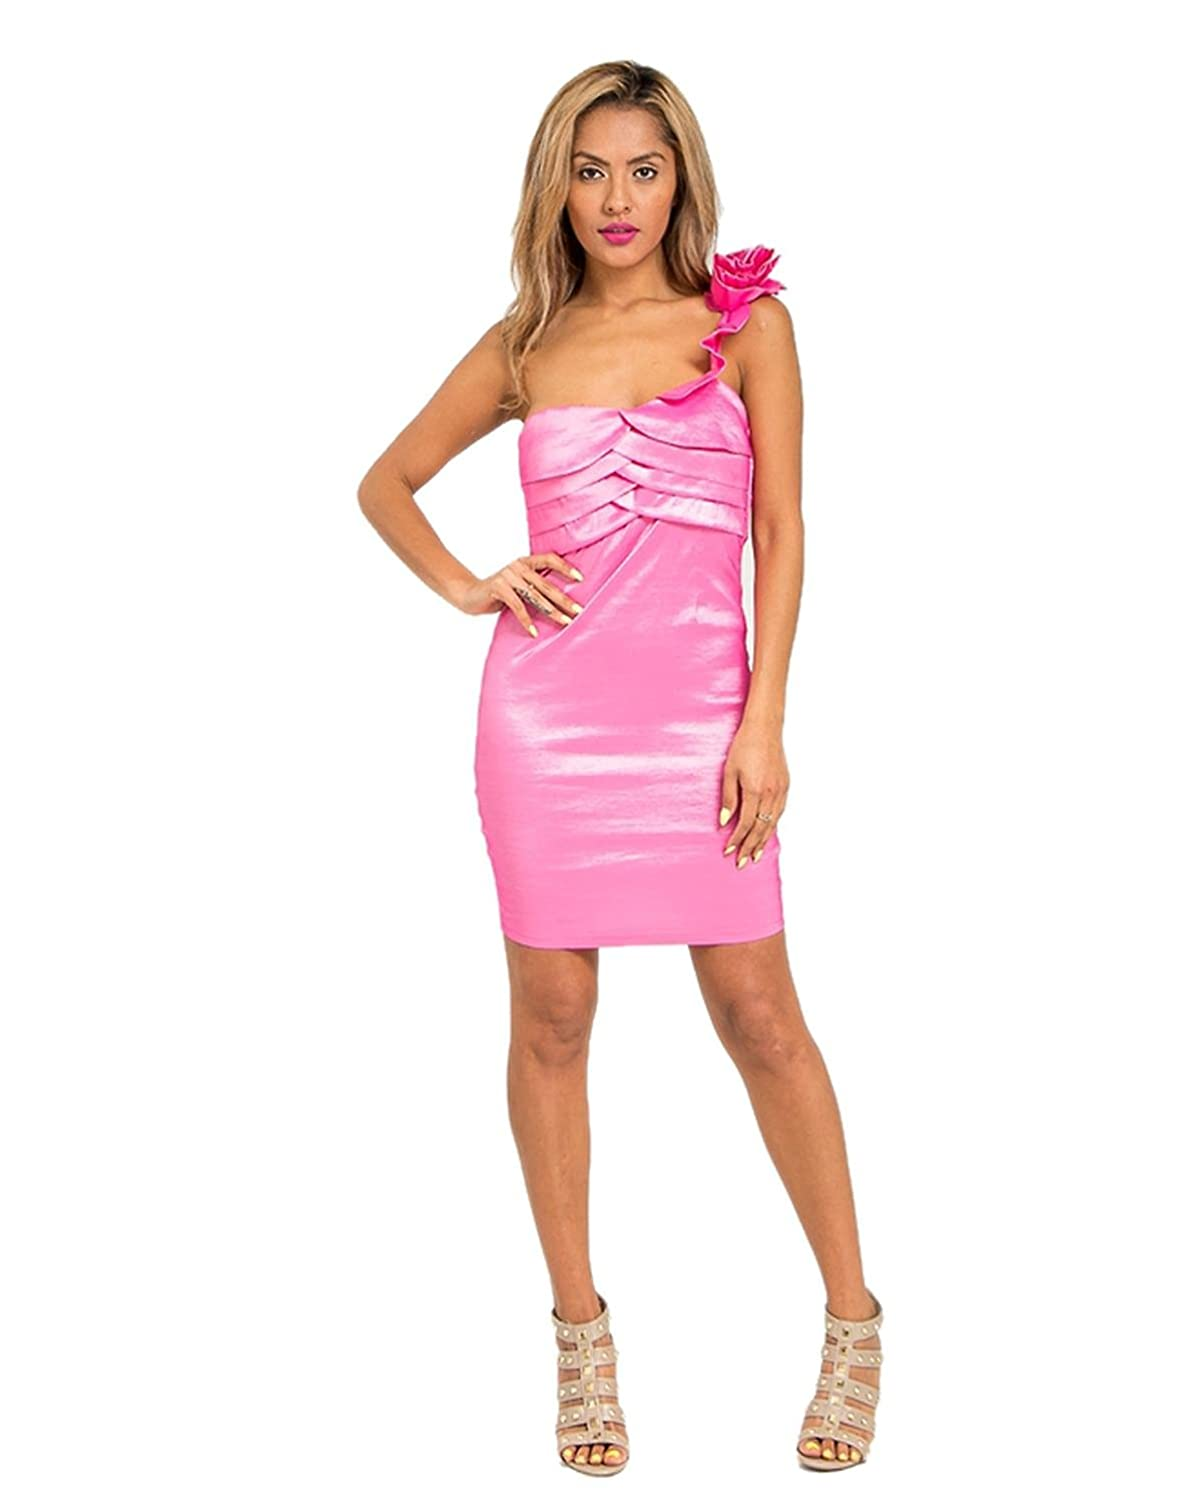 G2 Chic Women's Single Strap Pleated Panel Chic Cocktail Dress